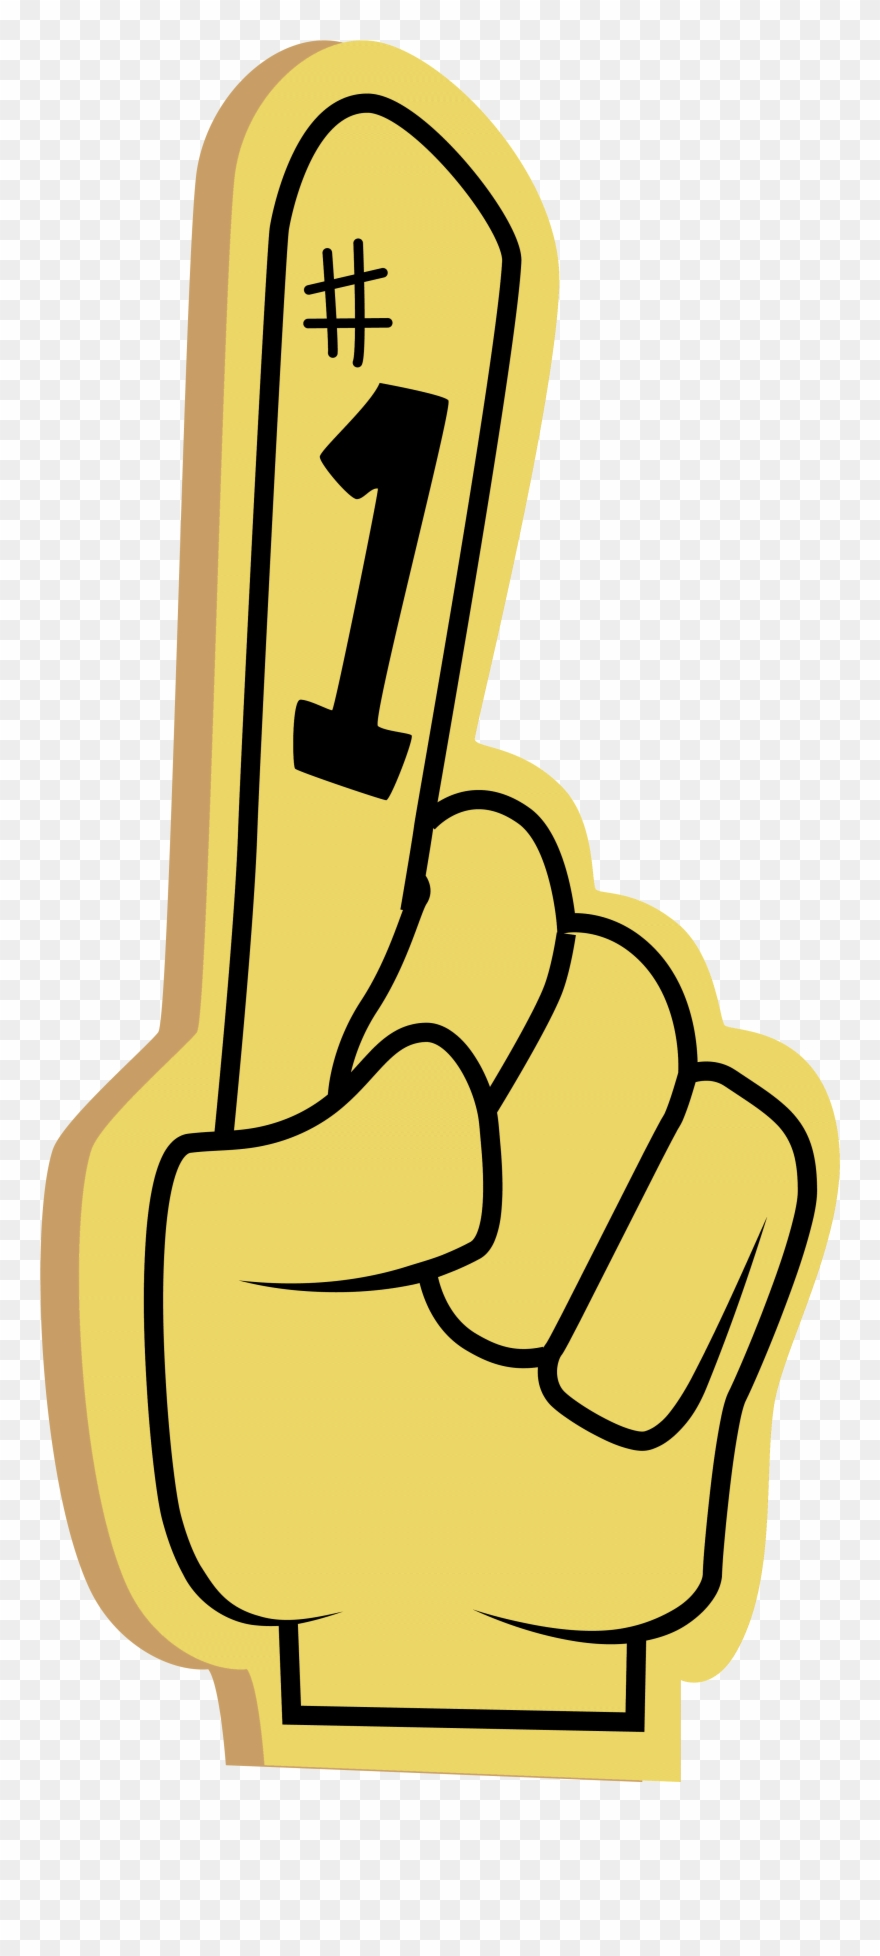 Number 1 hand clipart picture library library Number One Hand Clipart - Clip Art Foam Finger - Png ... picture library library